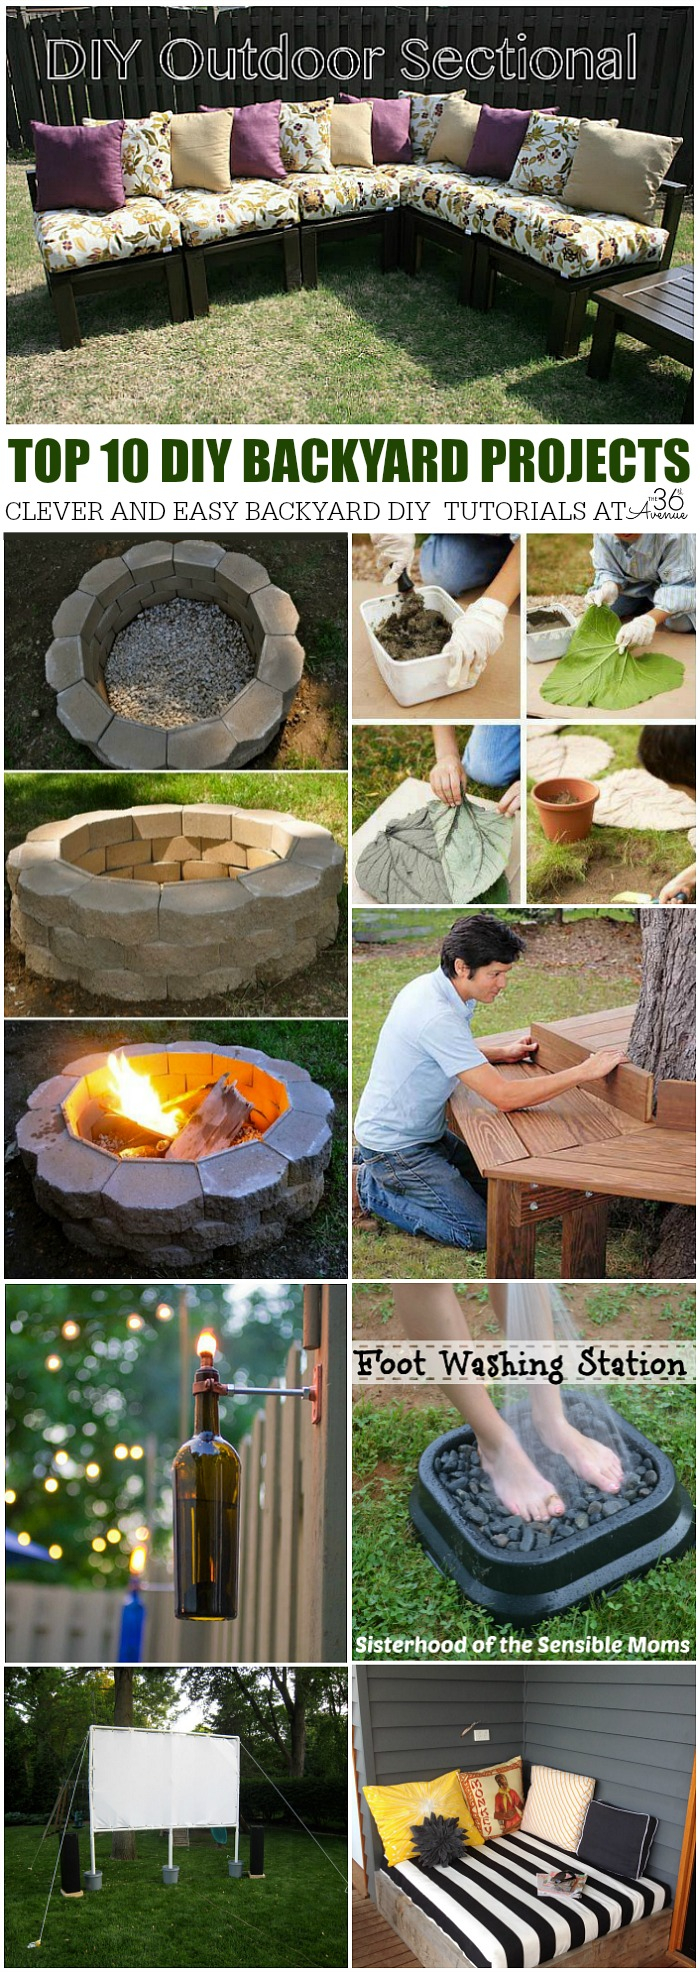 Diy Home Projects Backyard Ideas The 36th Avenue with 14 Genius Initiatives of How to Make Diy Ideas For Backyard